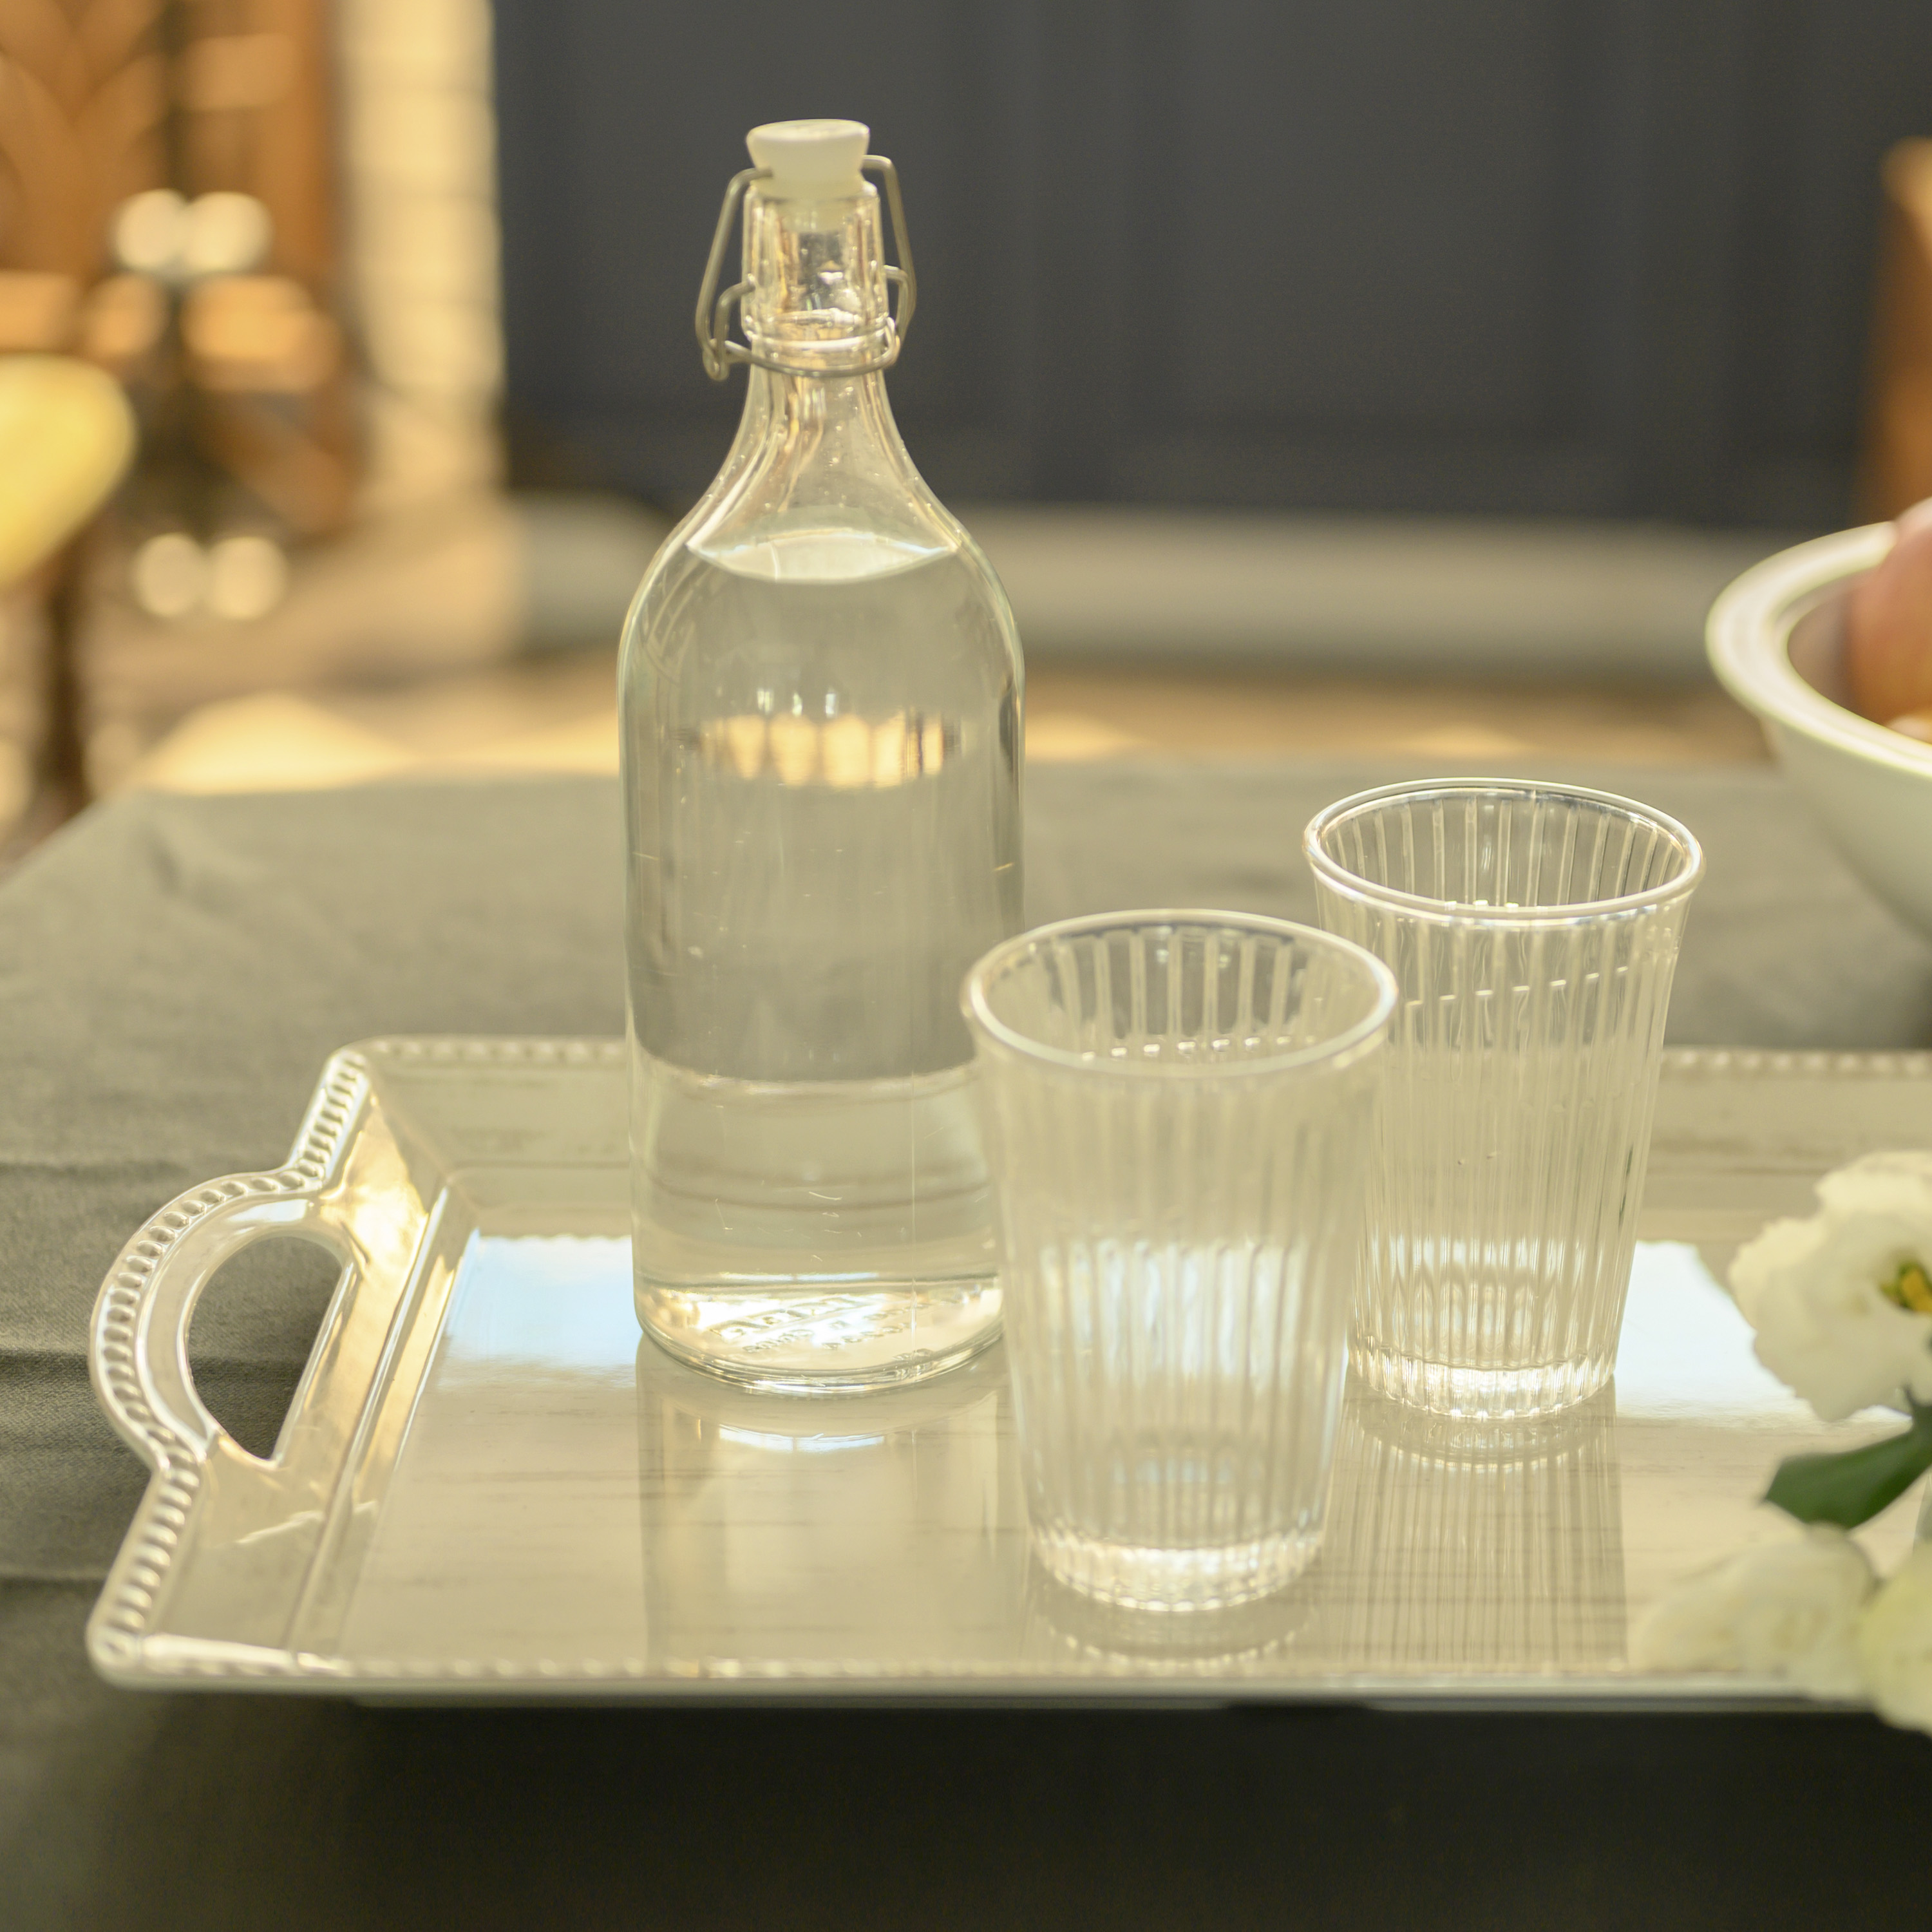 French Country Serving Tray, Oyster slideshow image 2